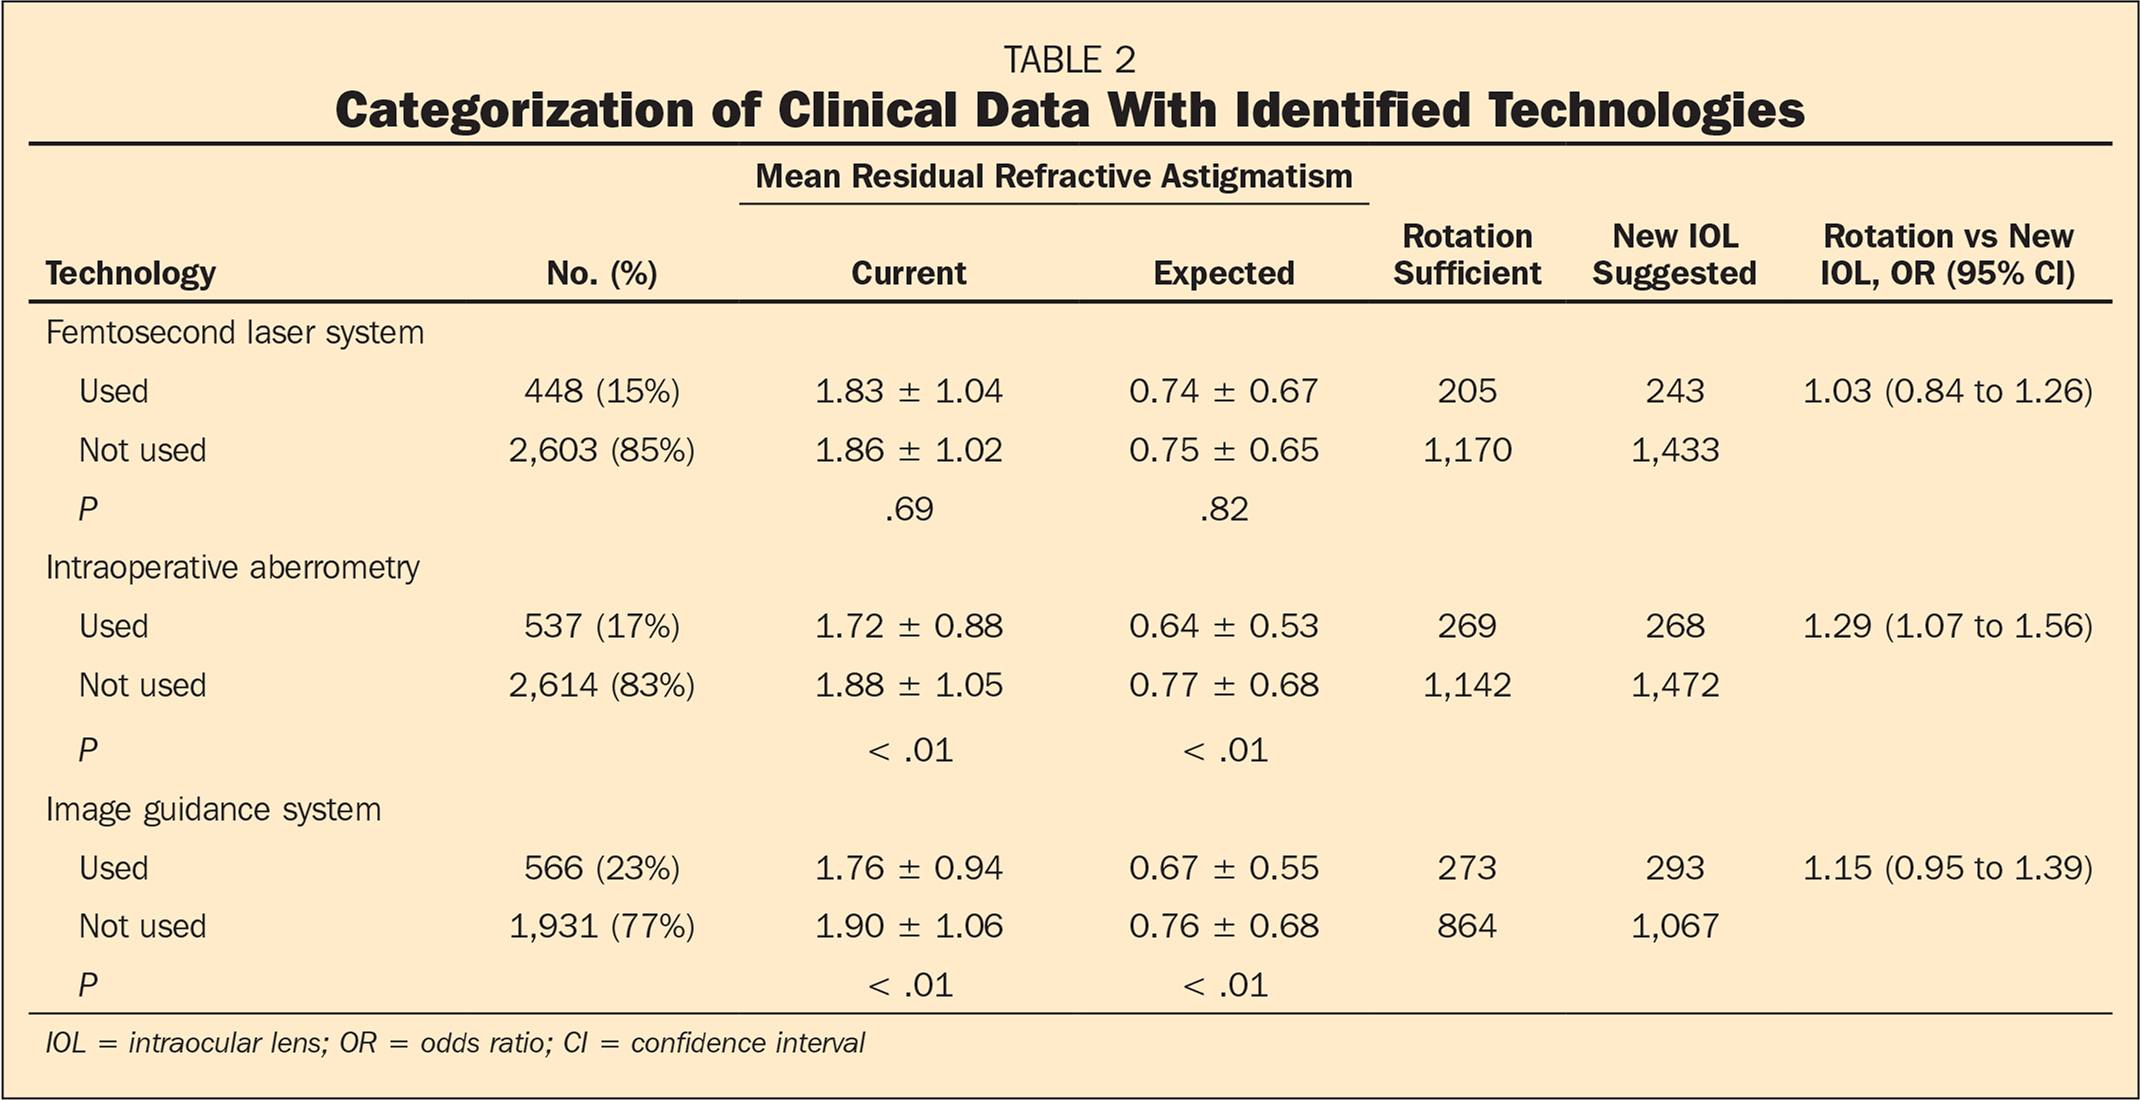 Categorization of Clinical Data With Identified Technologies